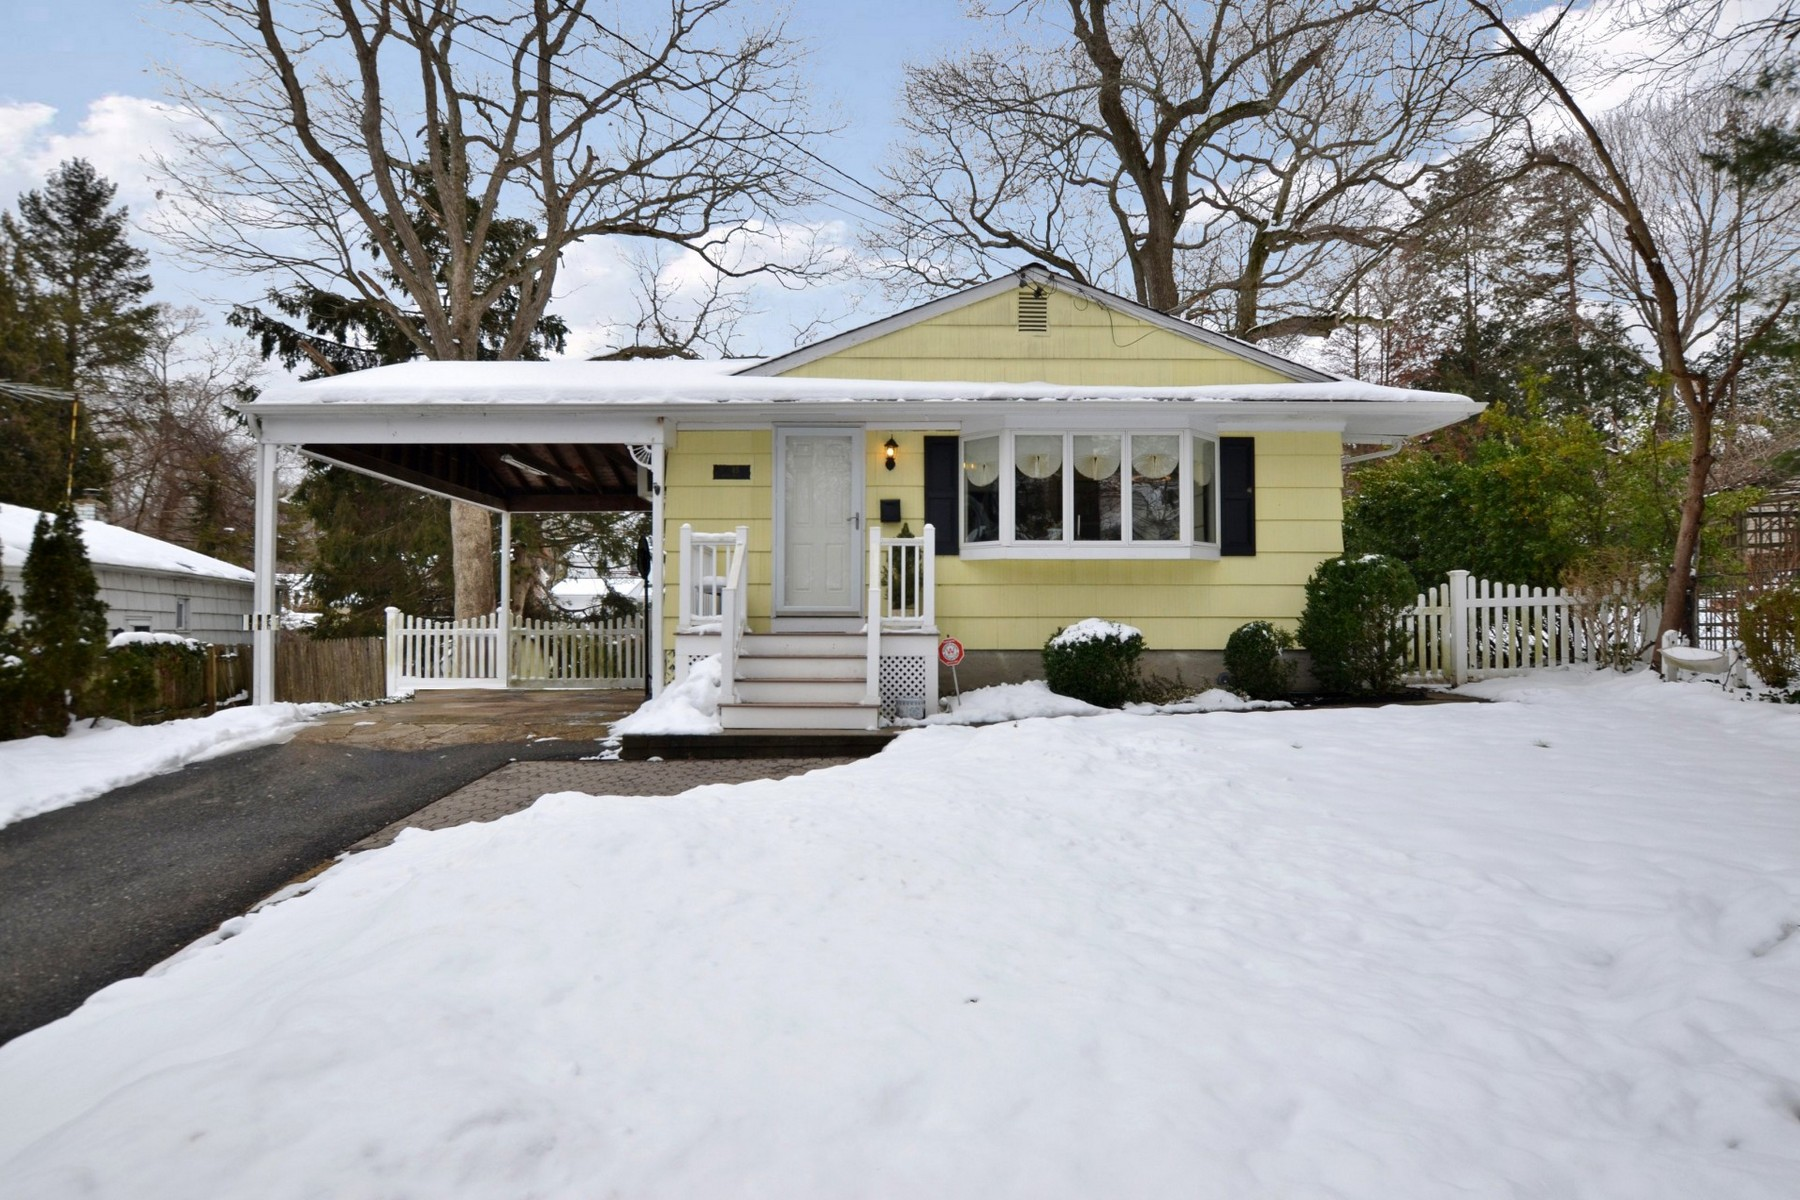 Single Family Home for Sale at Ranch 45 Front Dr Huntington Station, New York, 11746 United States